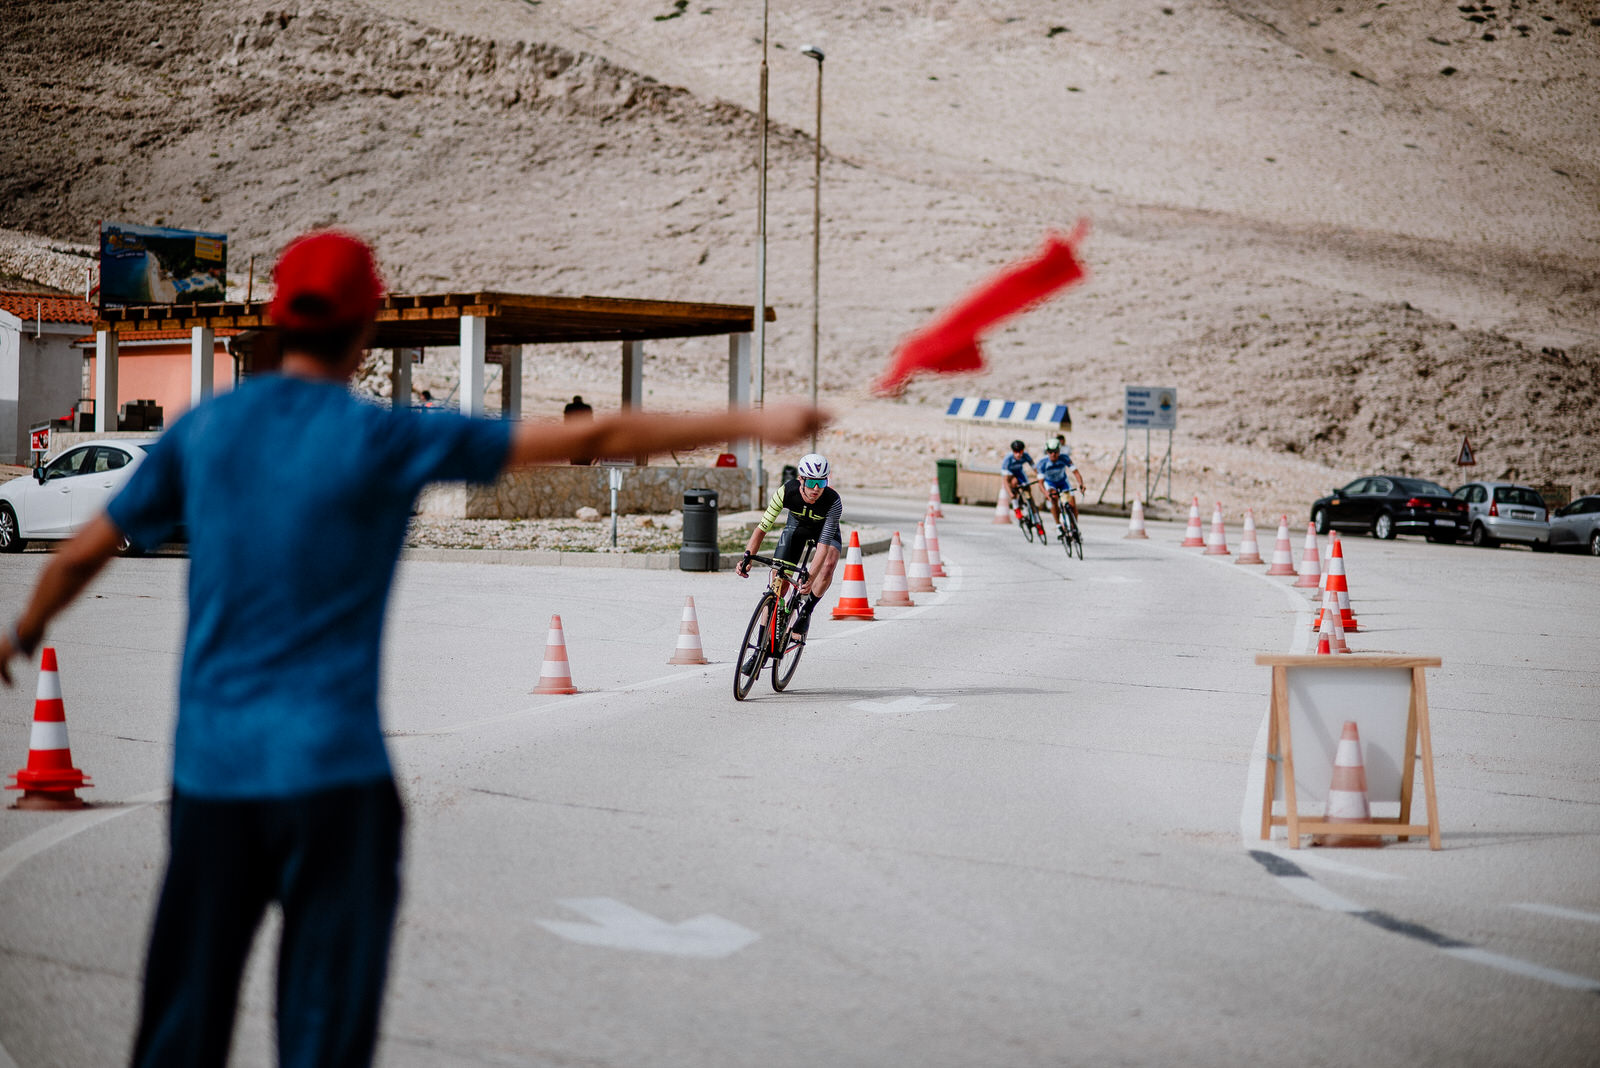 likaclub_Granfondo-Pag-–-Cycling-on-the-Moon_2019-14